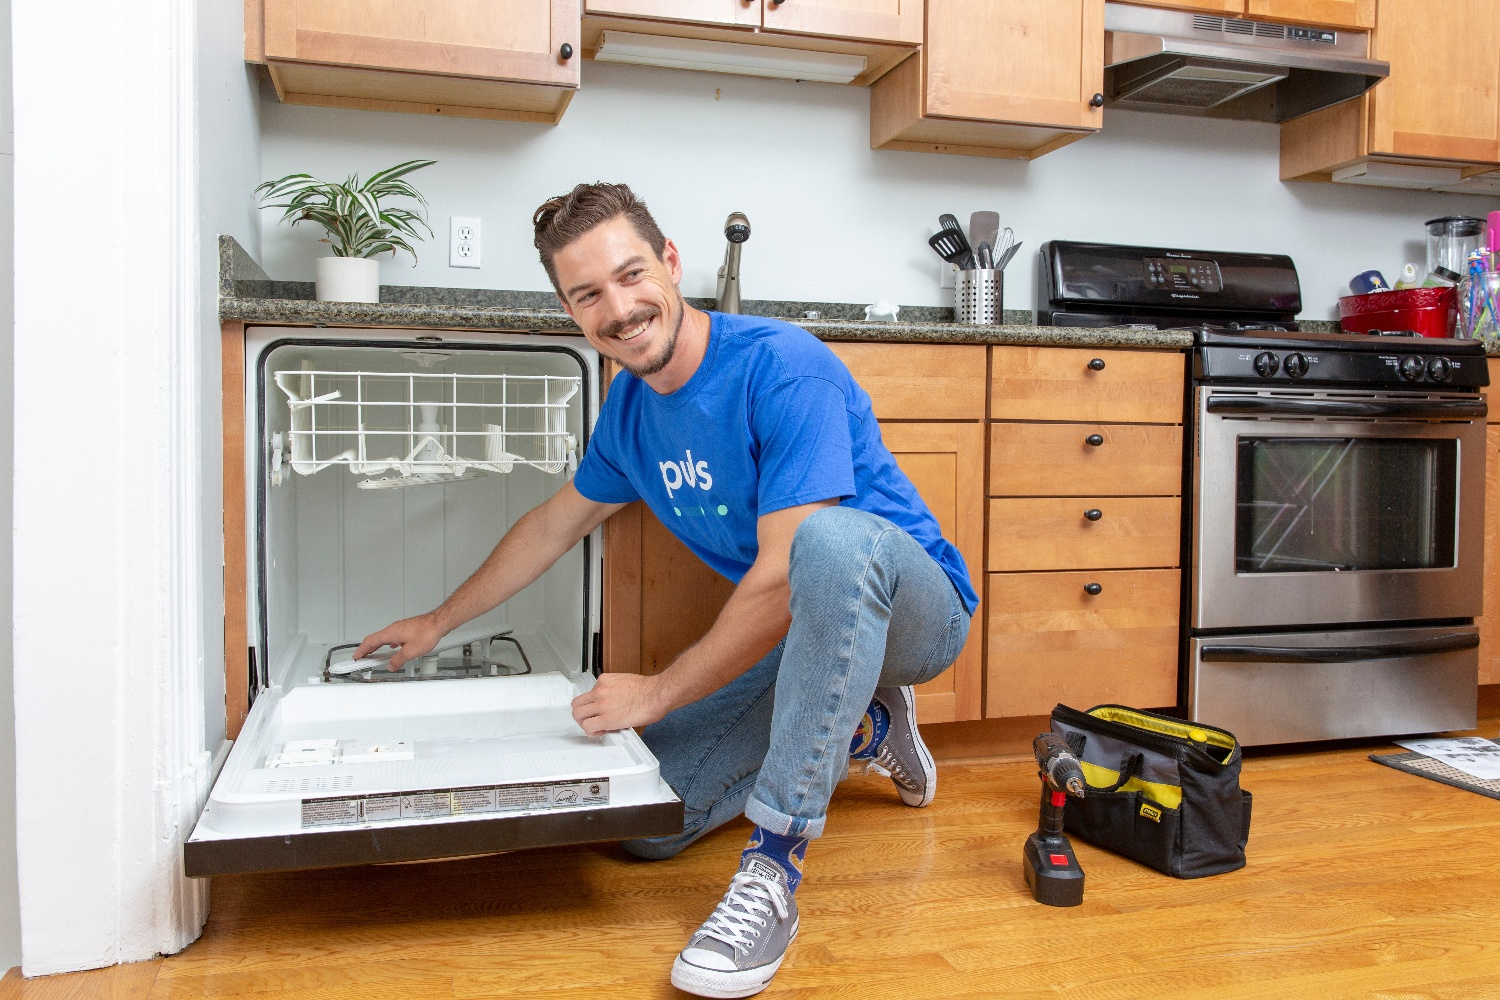 Appliance Repair Near Me How To Find The Best Company